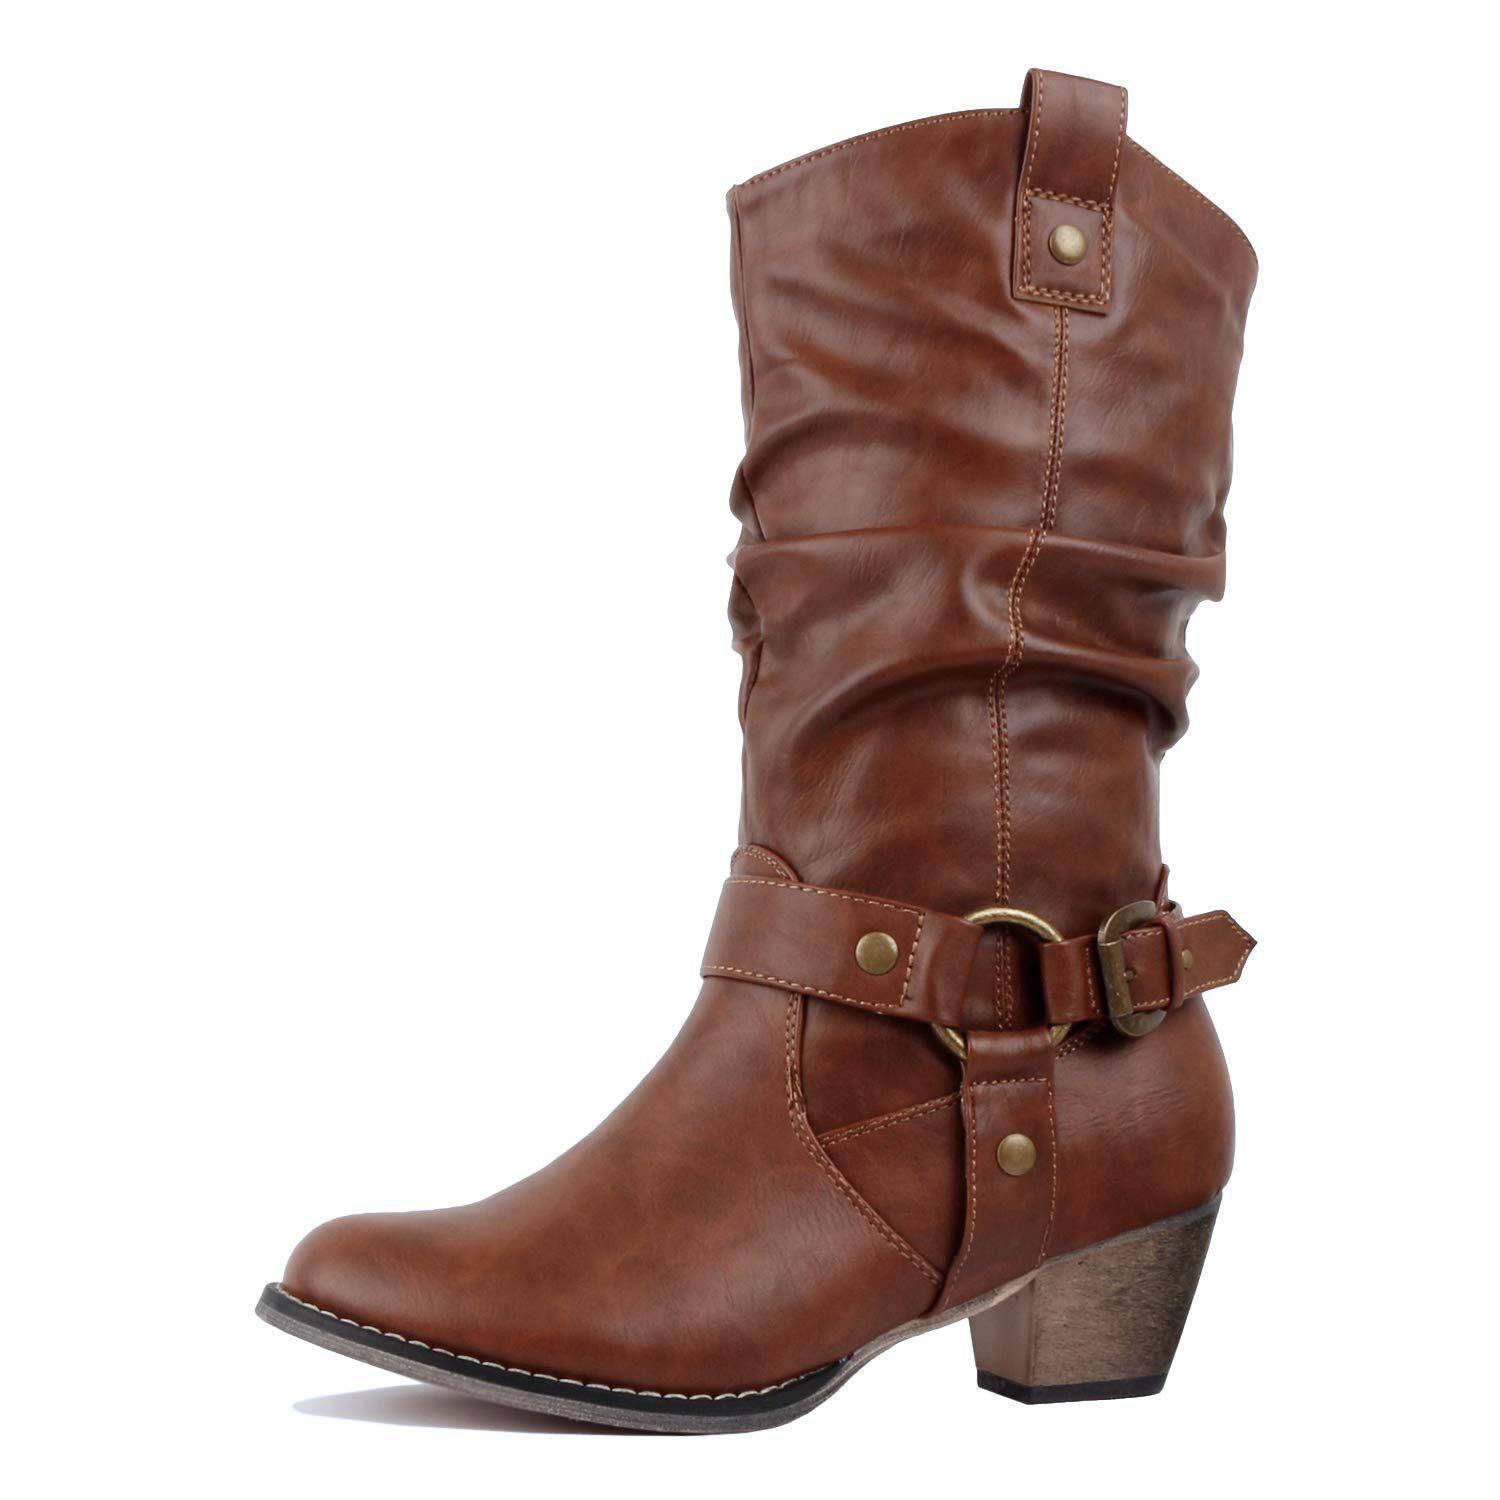 Tan Harness West Blvd Miami Cowboy Western Boots